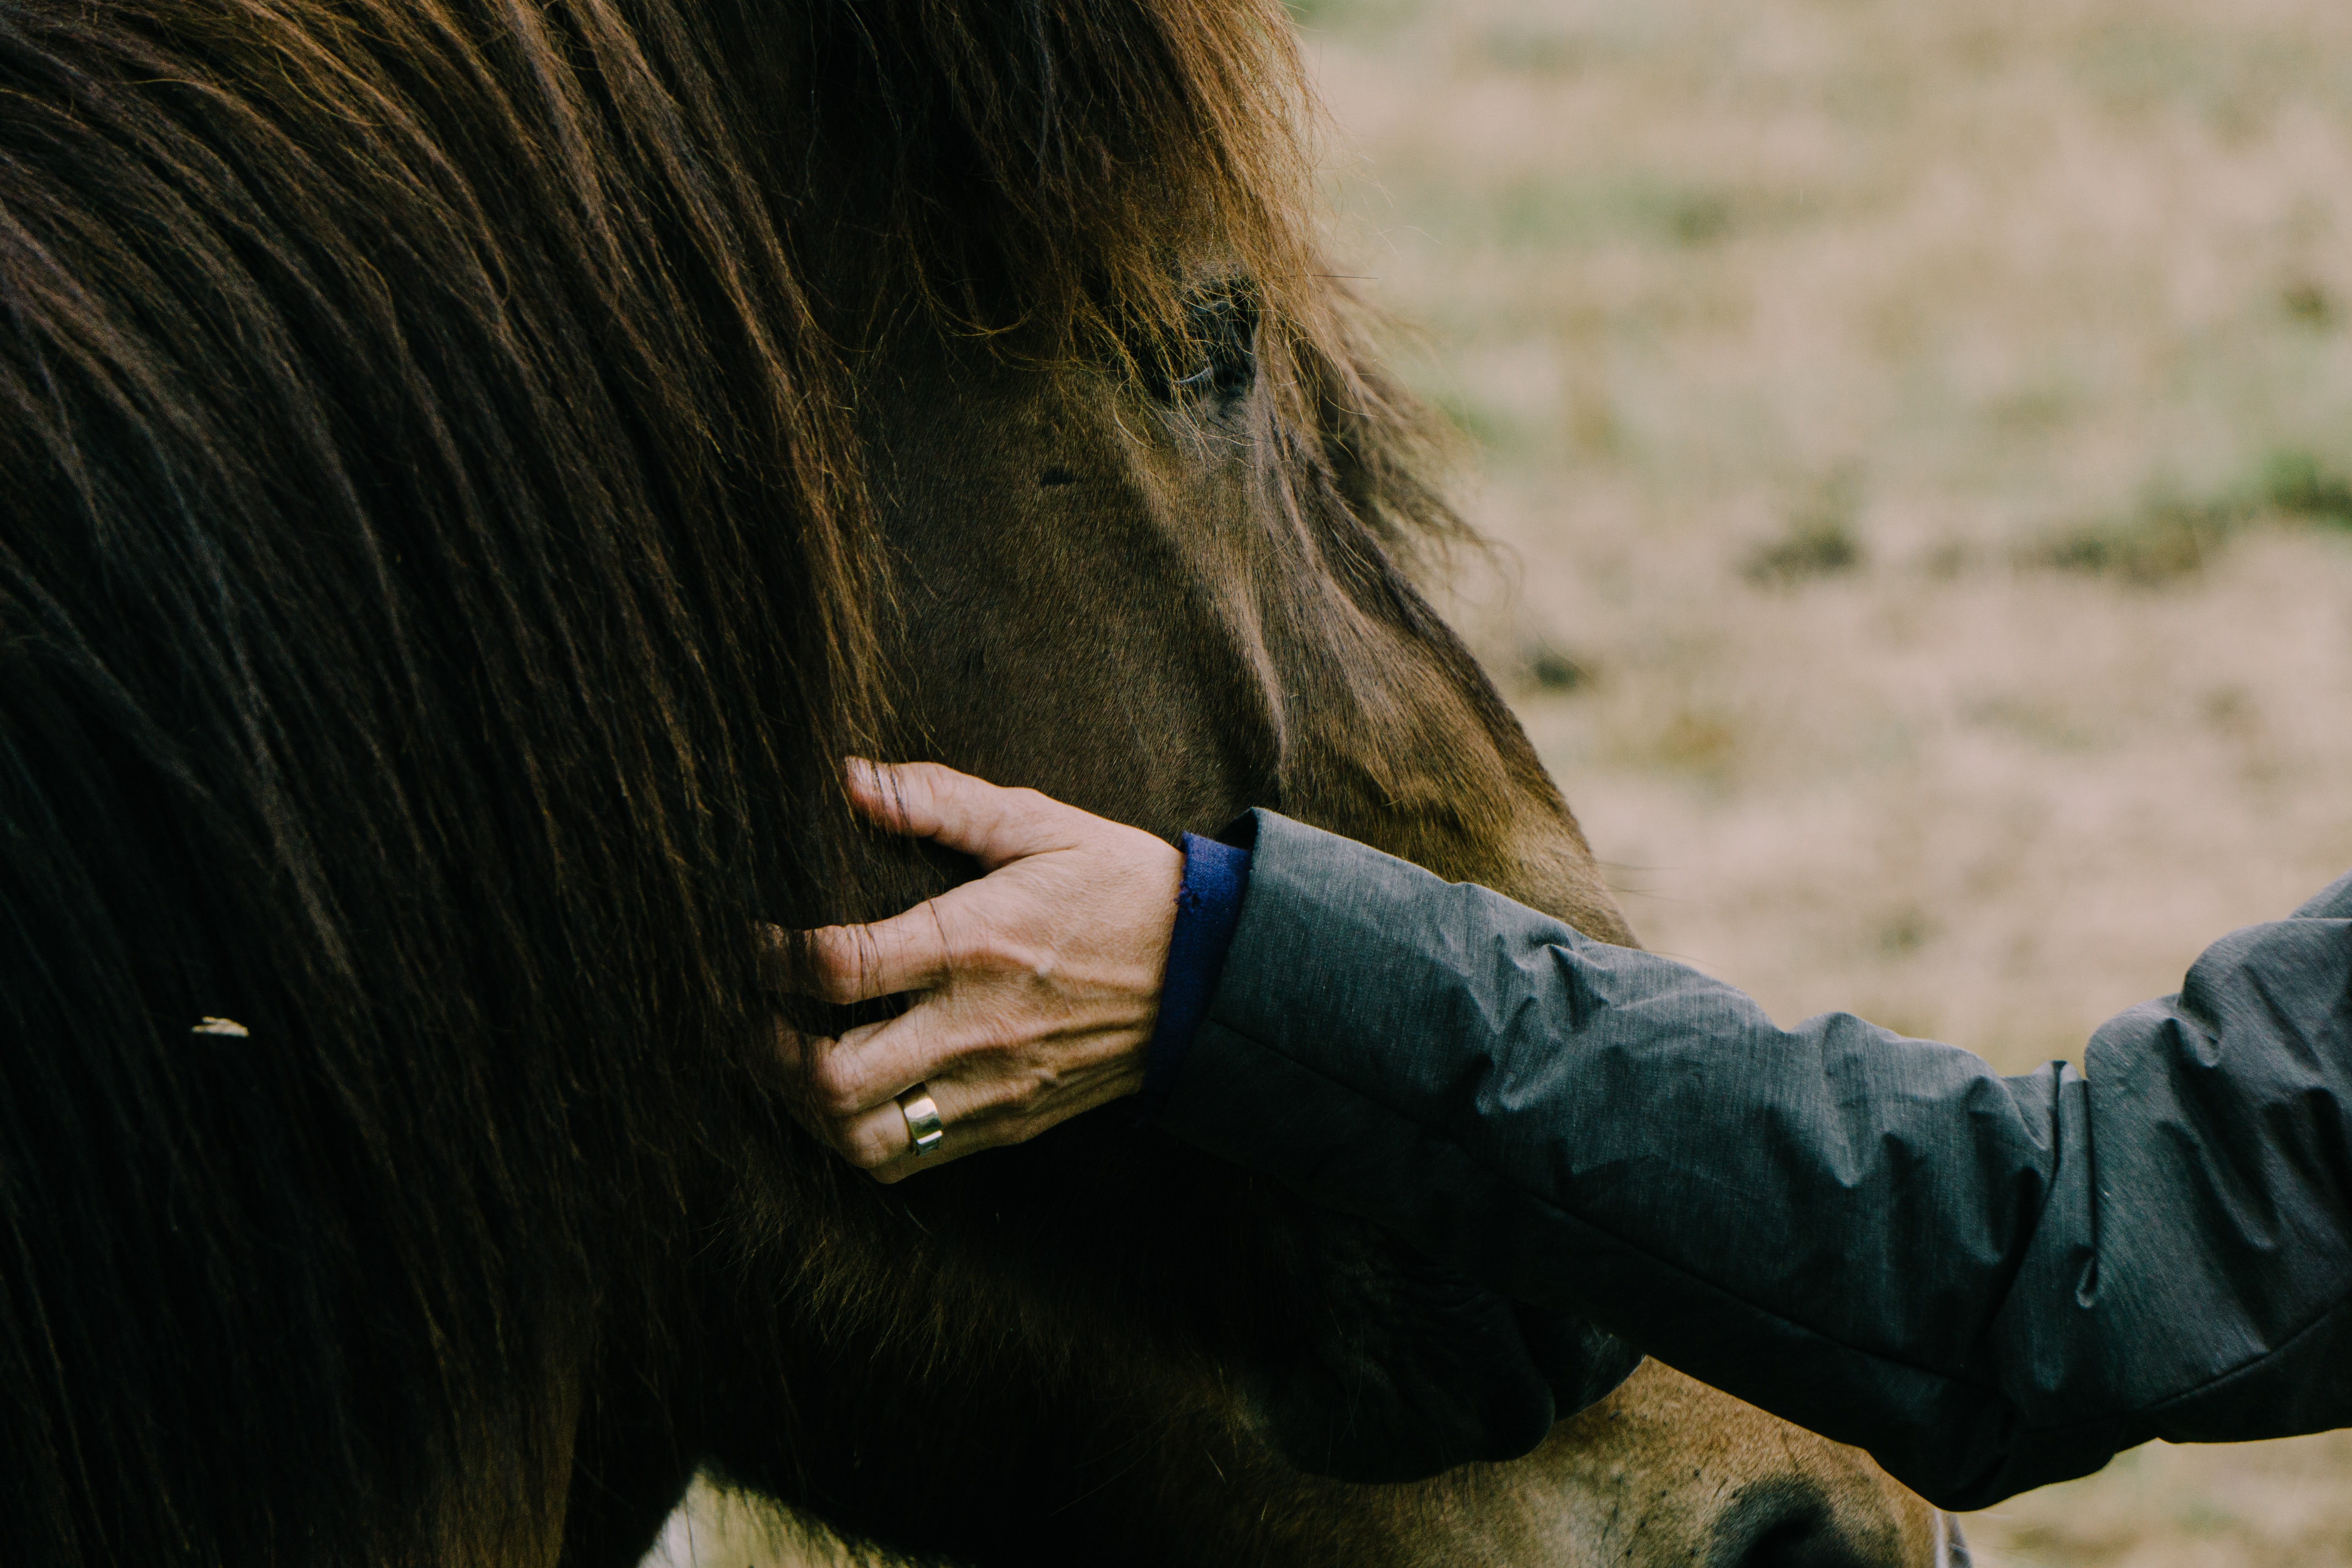 A person wearing a wedding ring pets a brown horse's mane